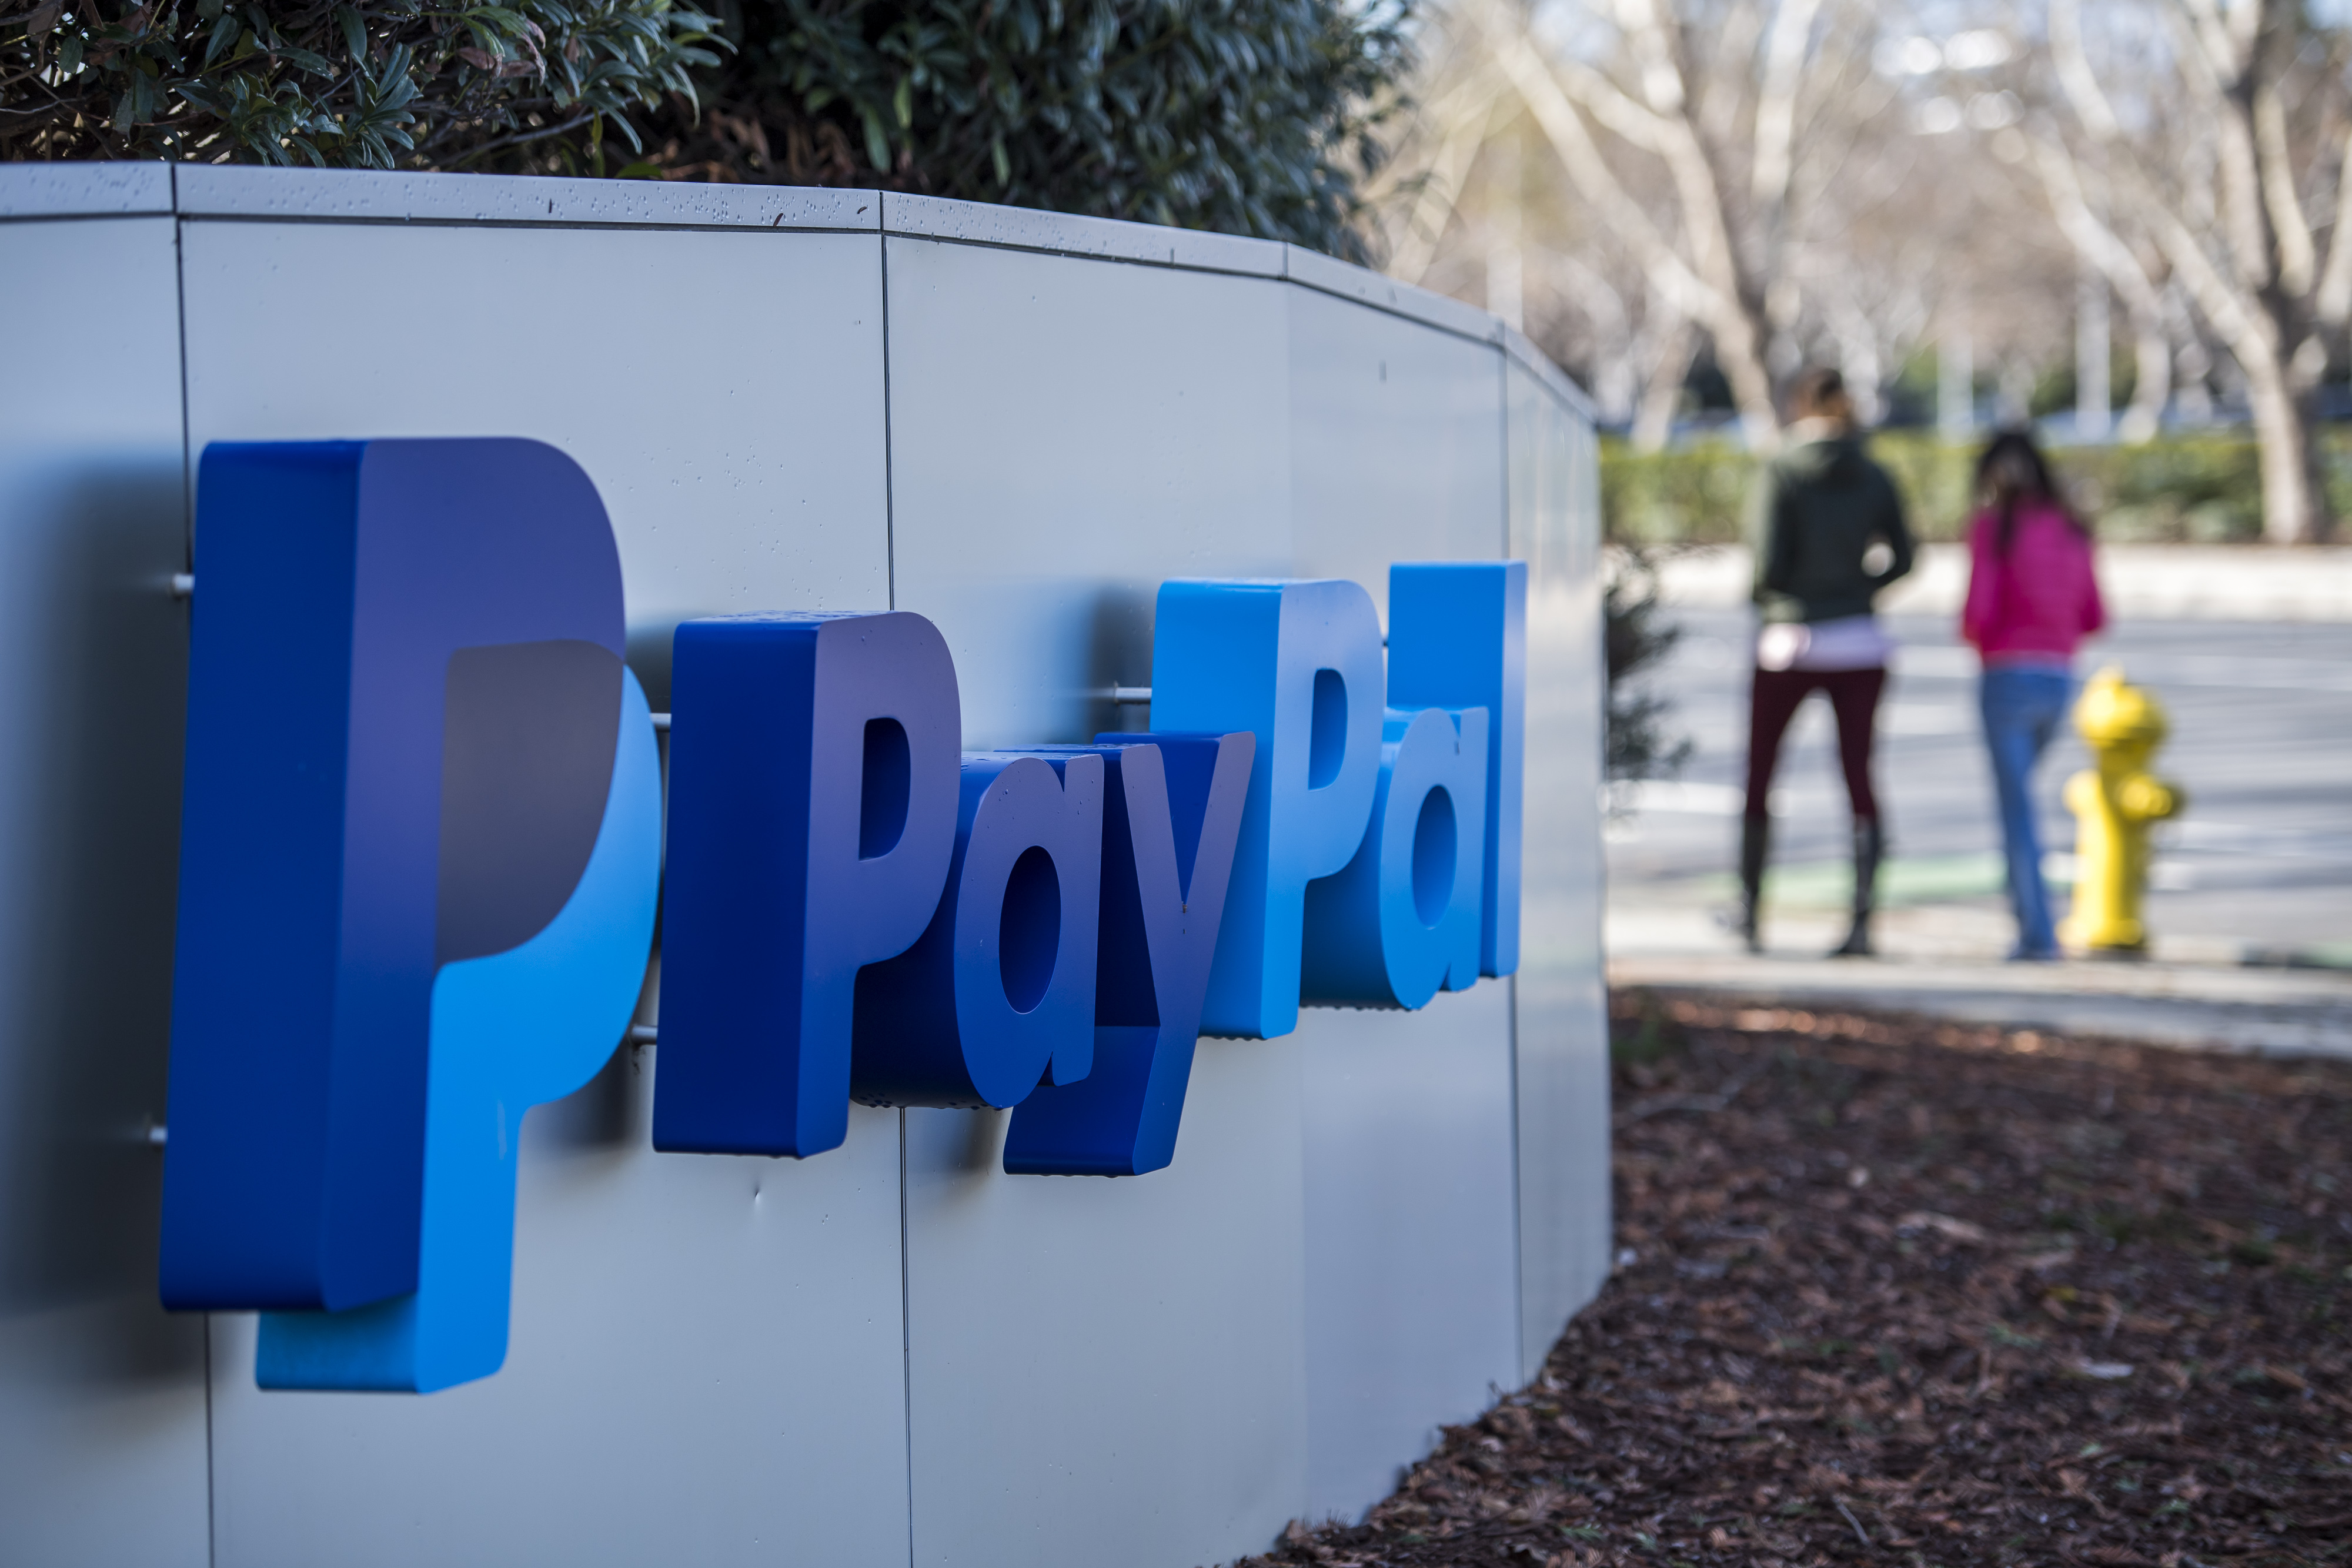 PayPal spending billions on M&A to squeeze Stripe, Square